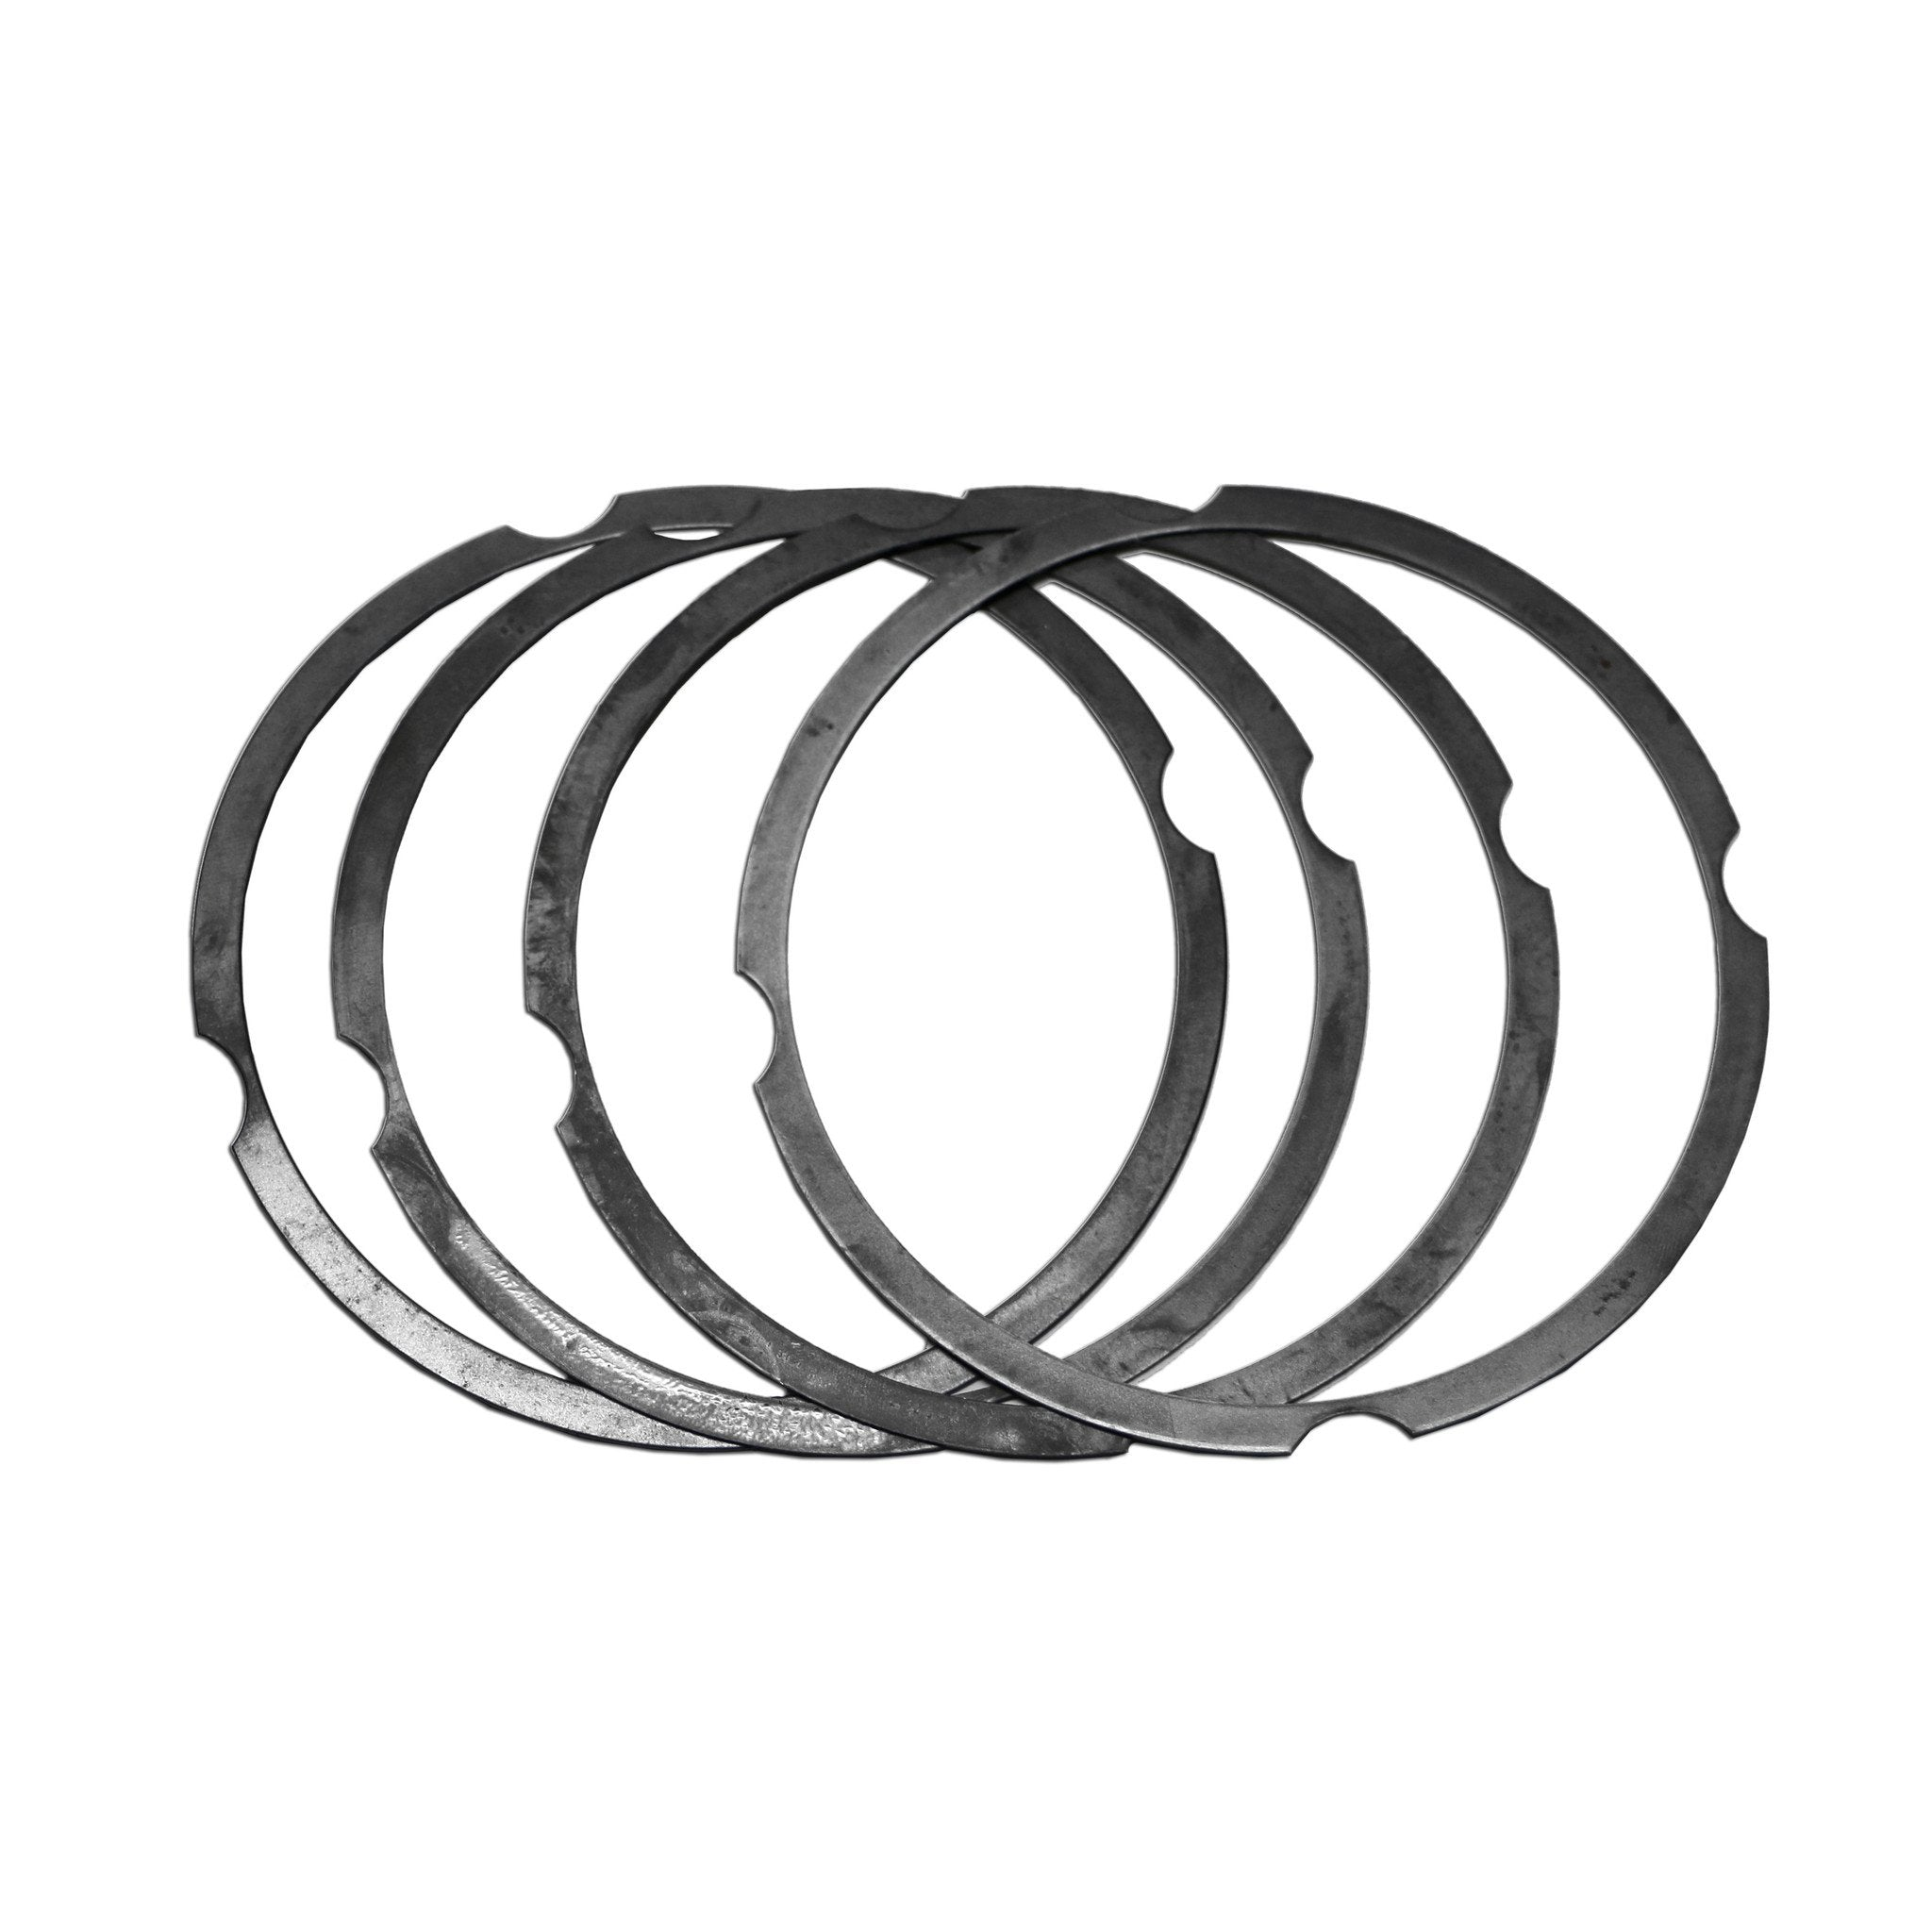 AA Performance Products 90.5 Set of 4 Size .020 92mm Cylinder Shim